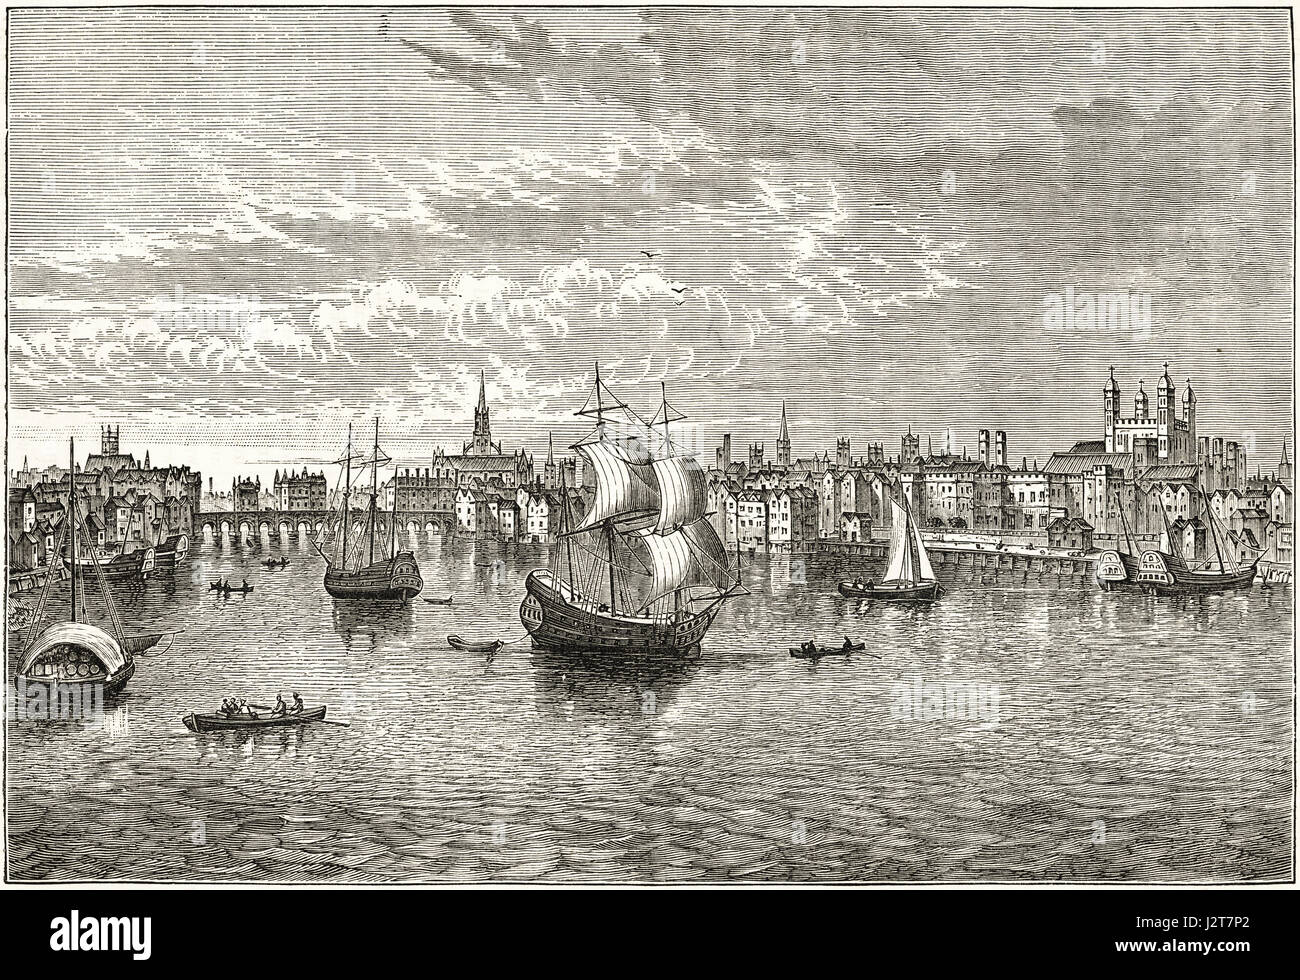 16th century south-east view of London over River Thames in 1550. Victorian engraving circa 1880. - Stock Image